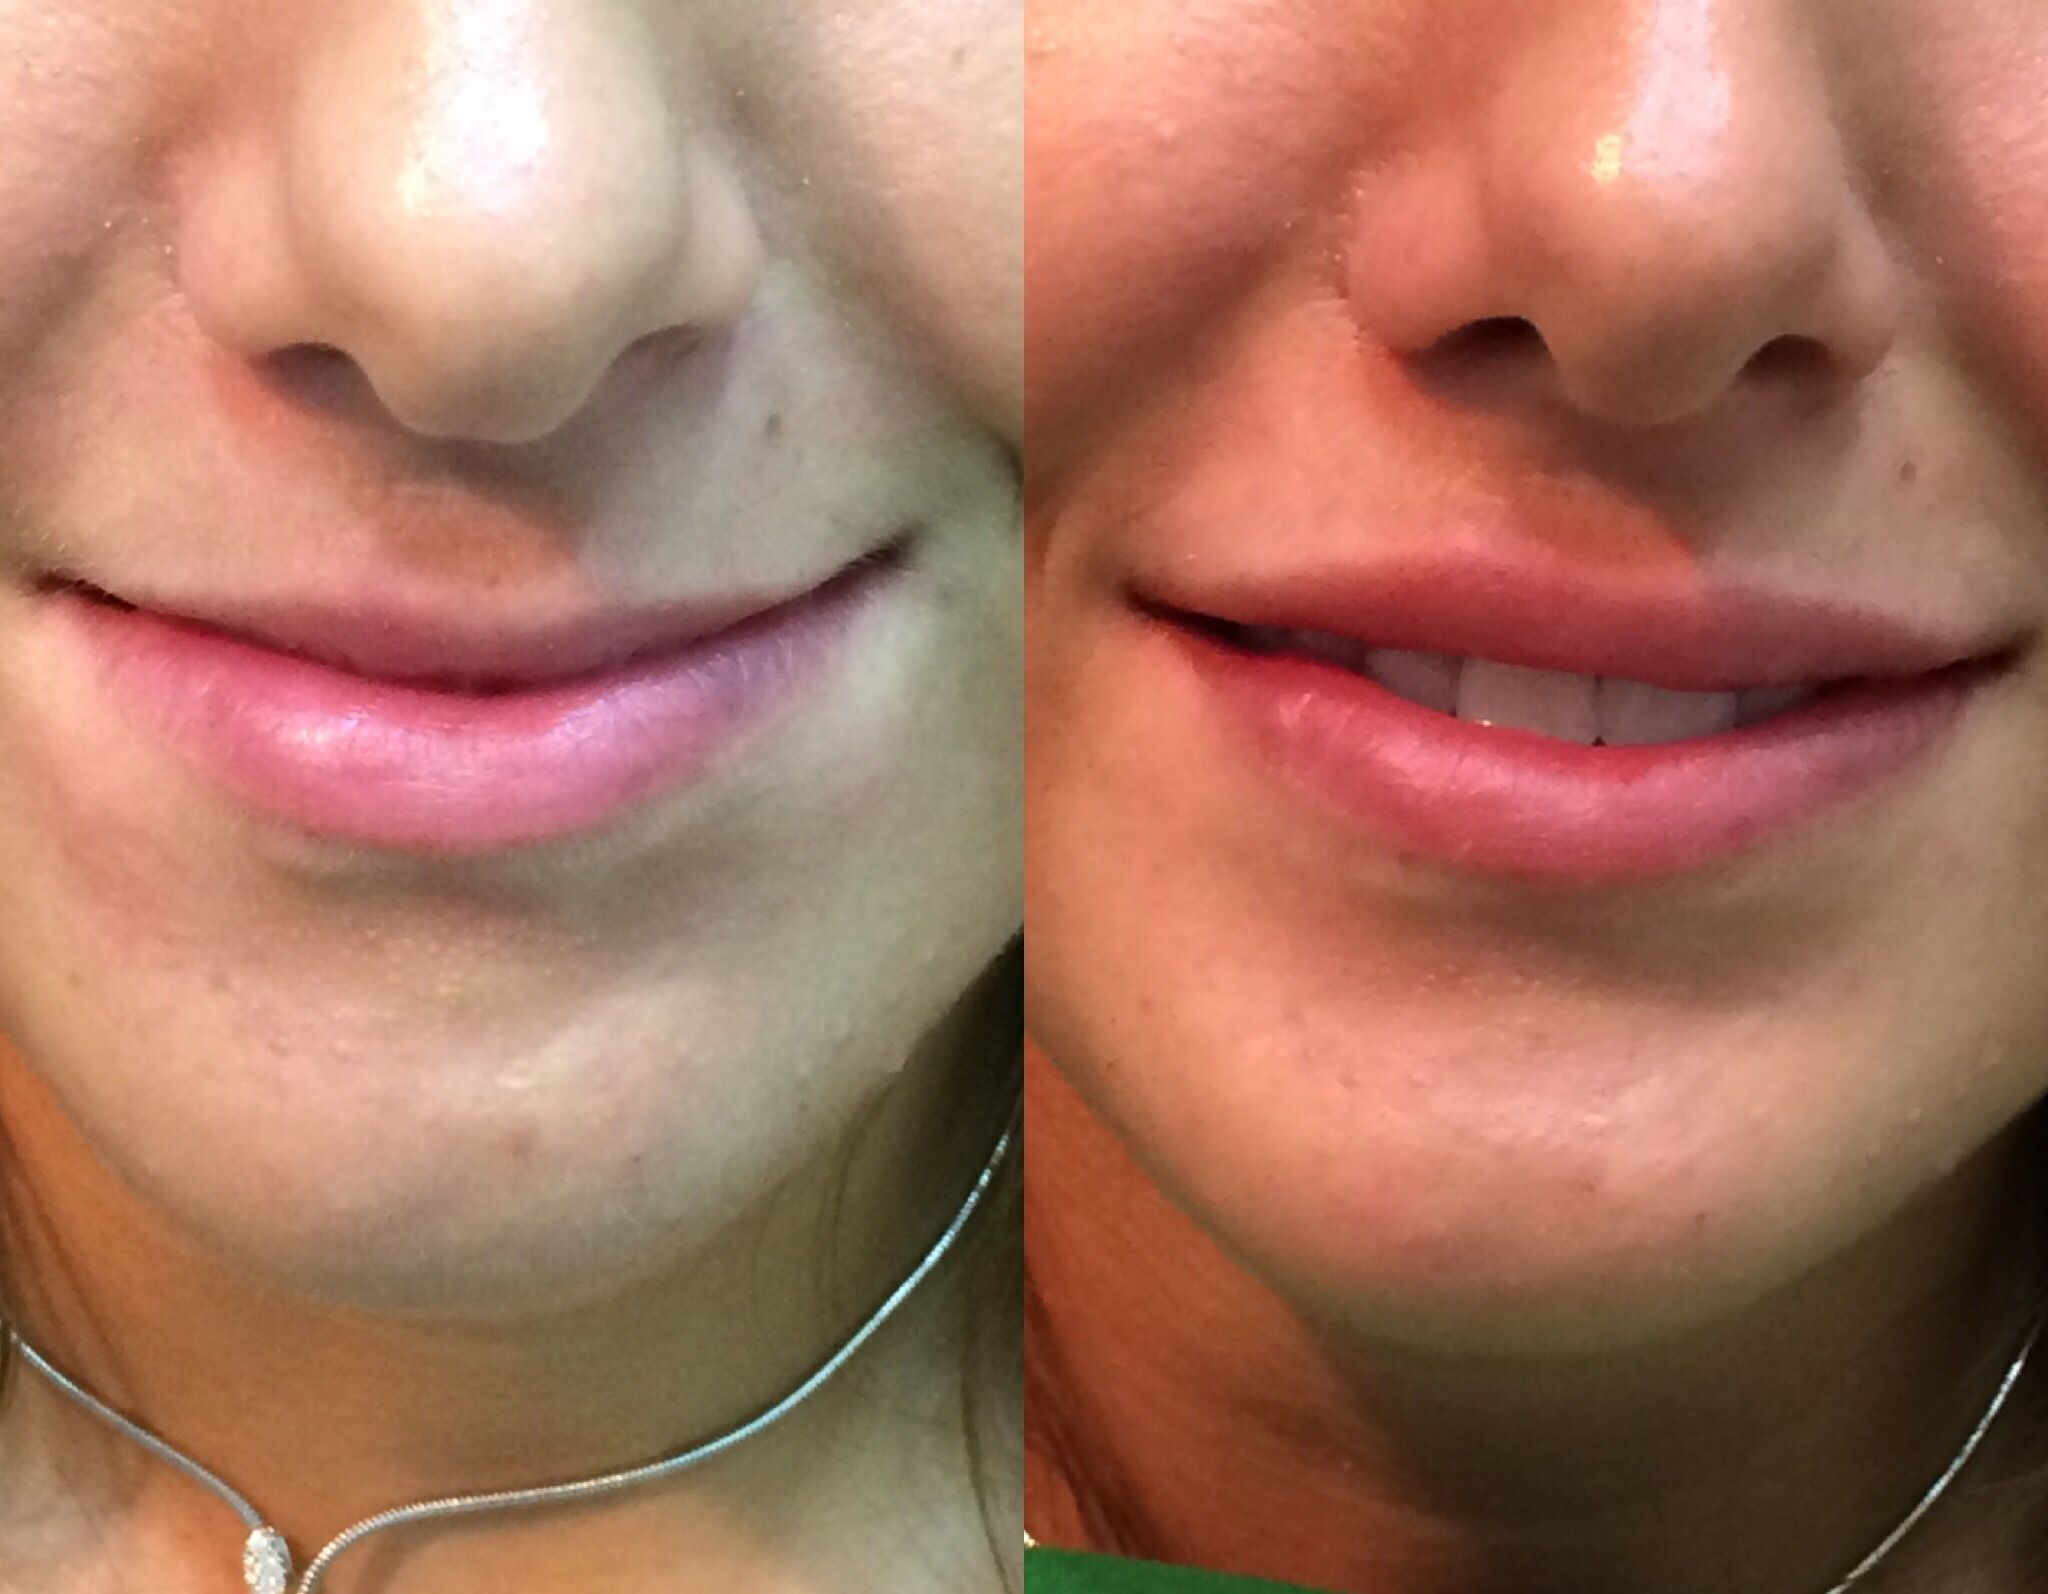 Before and after lips injected with hyaluronic acid Revanesse ultra